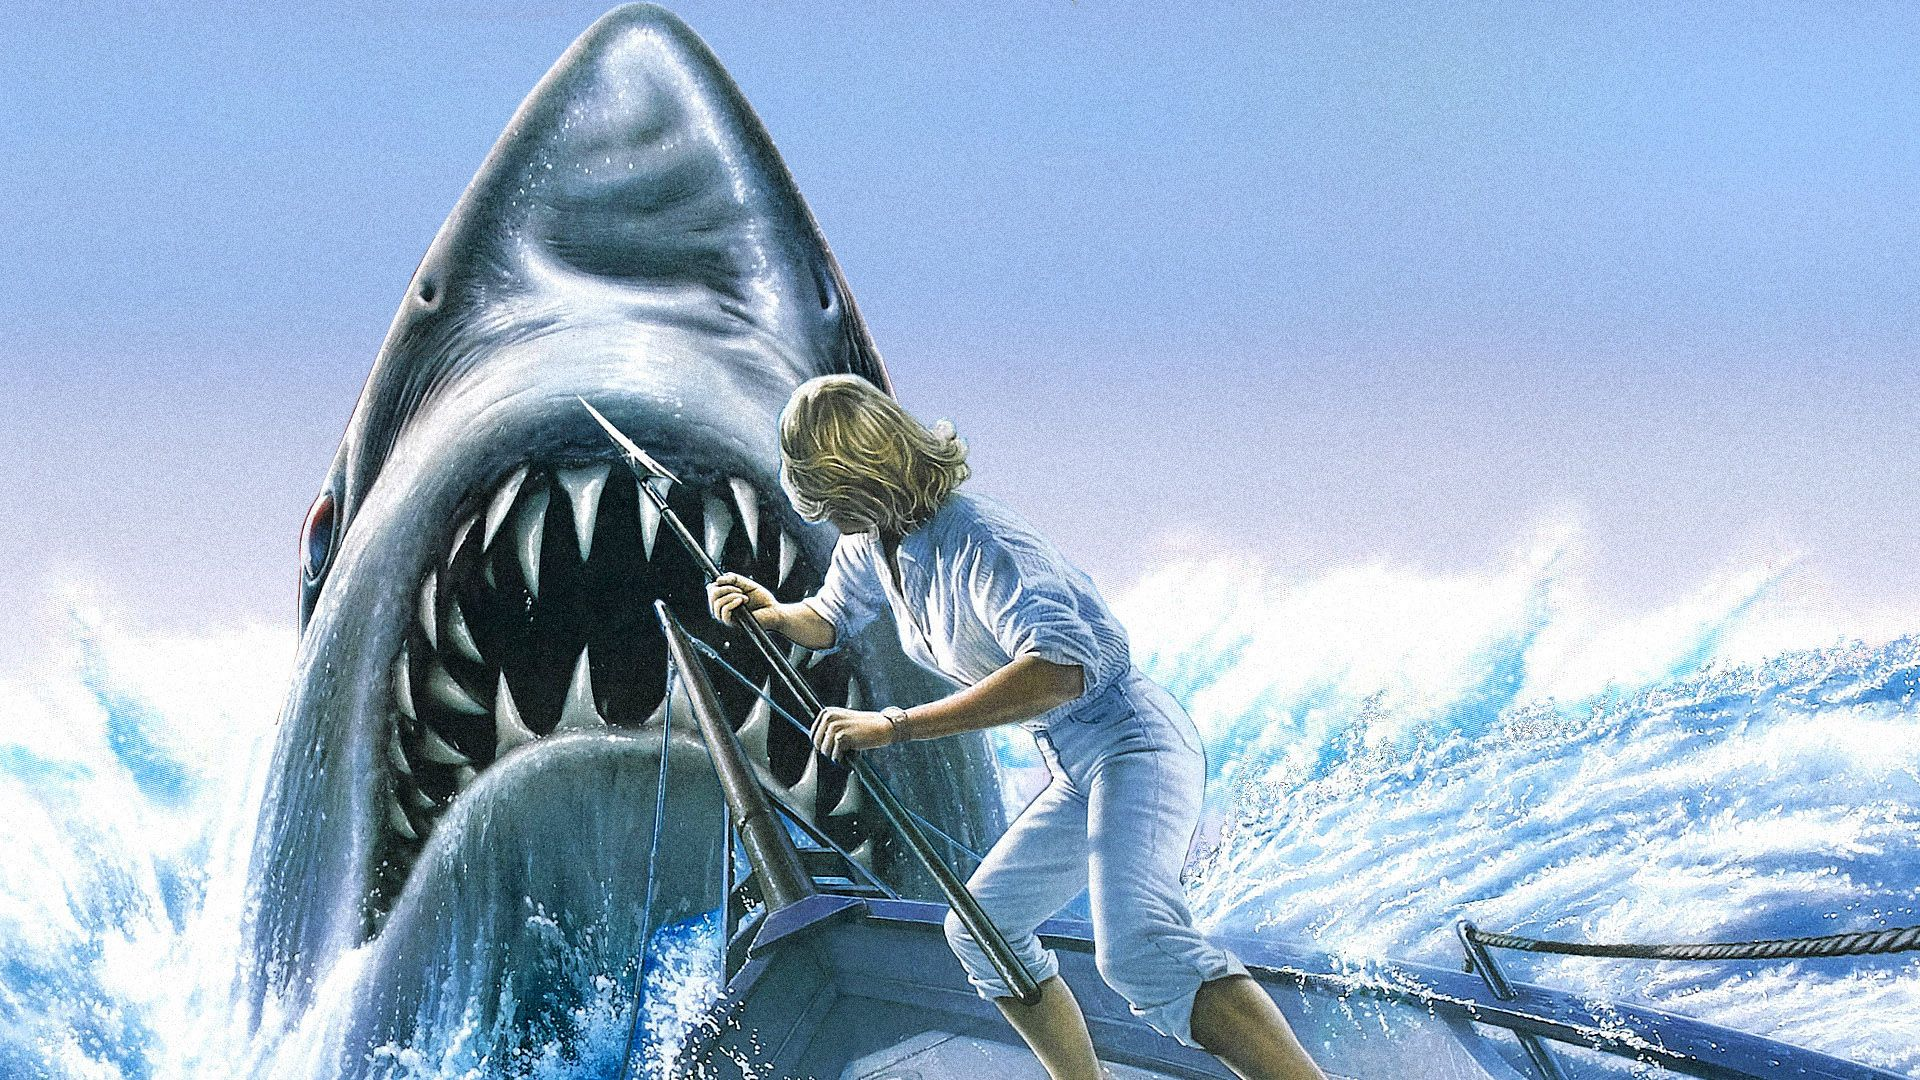 Best Images About Jaws On Pinterest Movie Props Great White Revenge Movies Streaming Movies Online